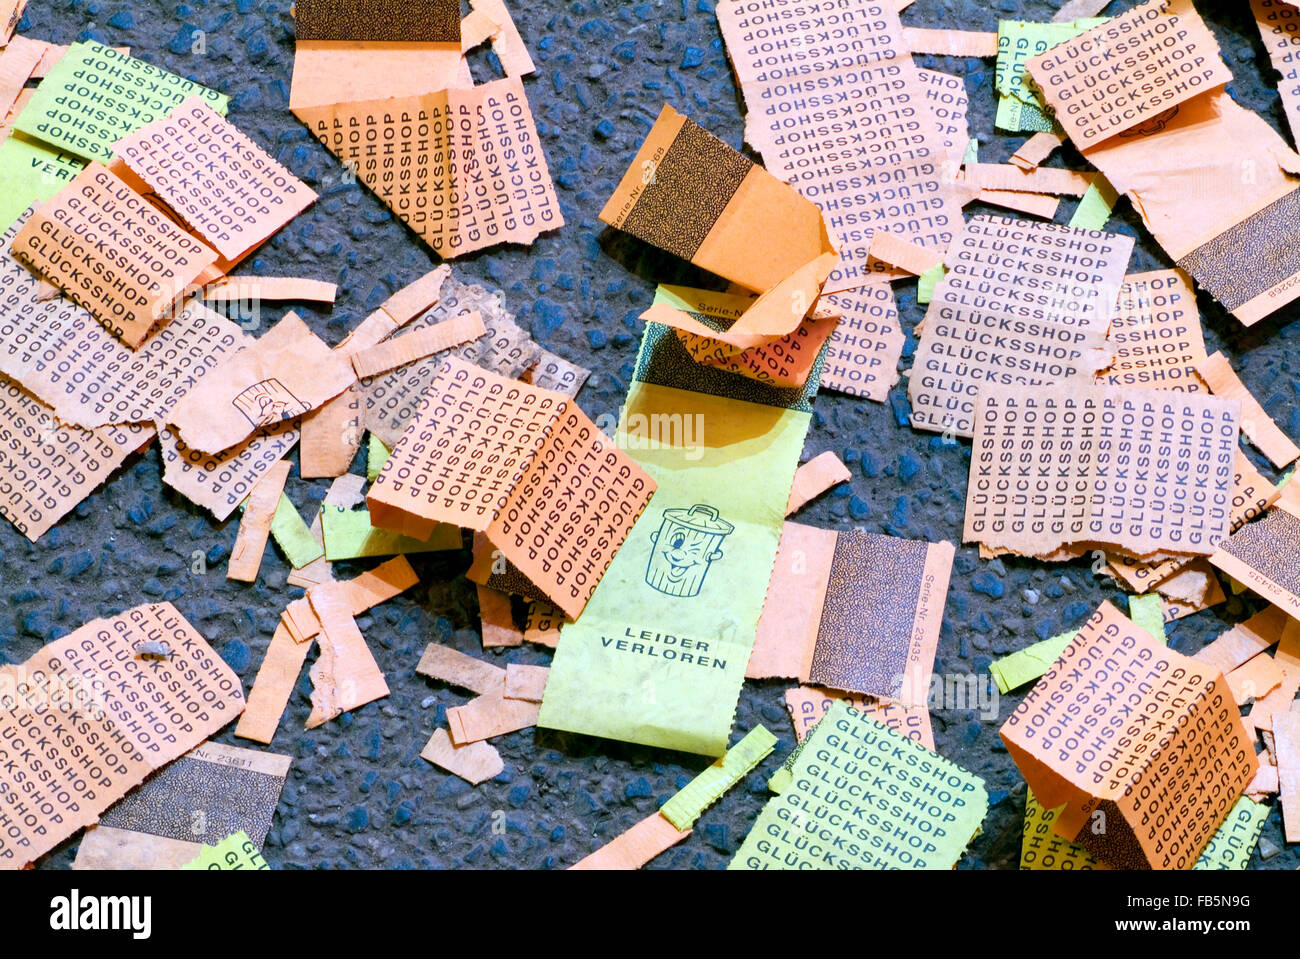 Thrown away blank tickets on a funfair laying on the ground germany europe - Stock Image